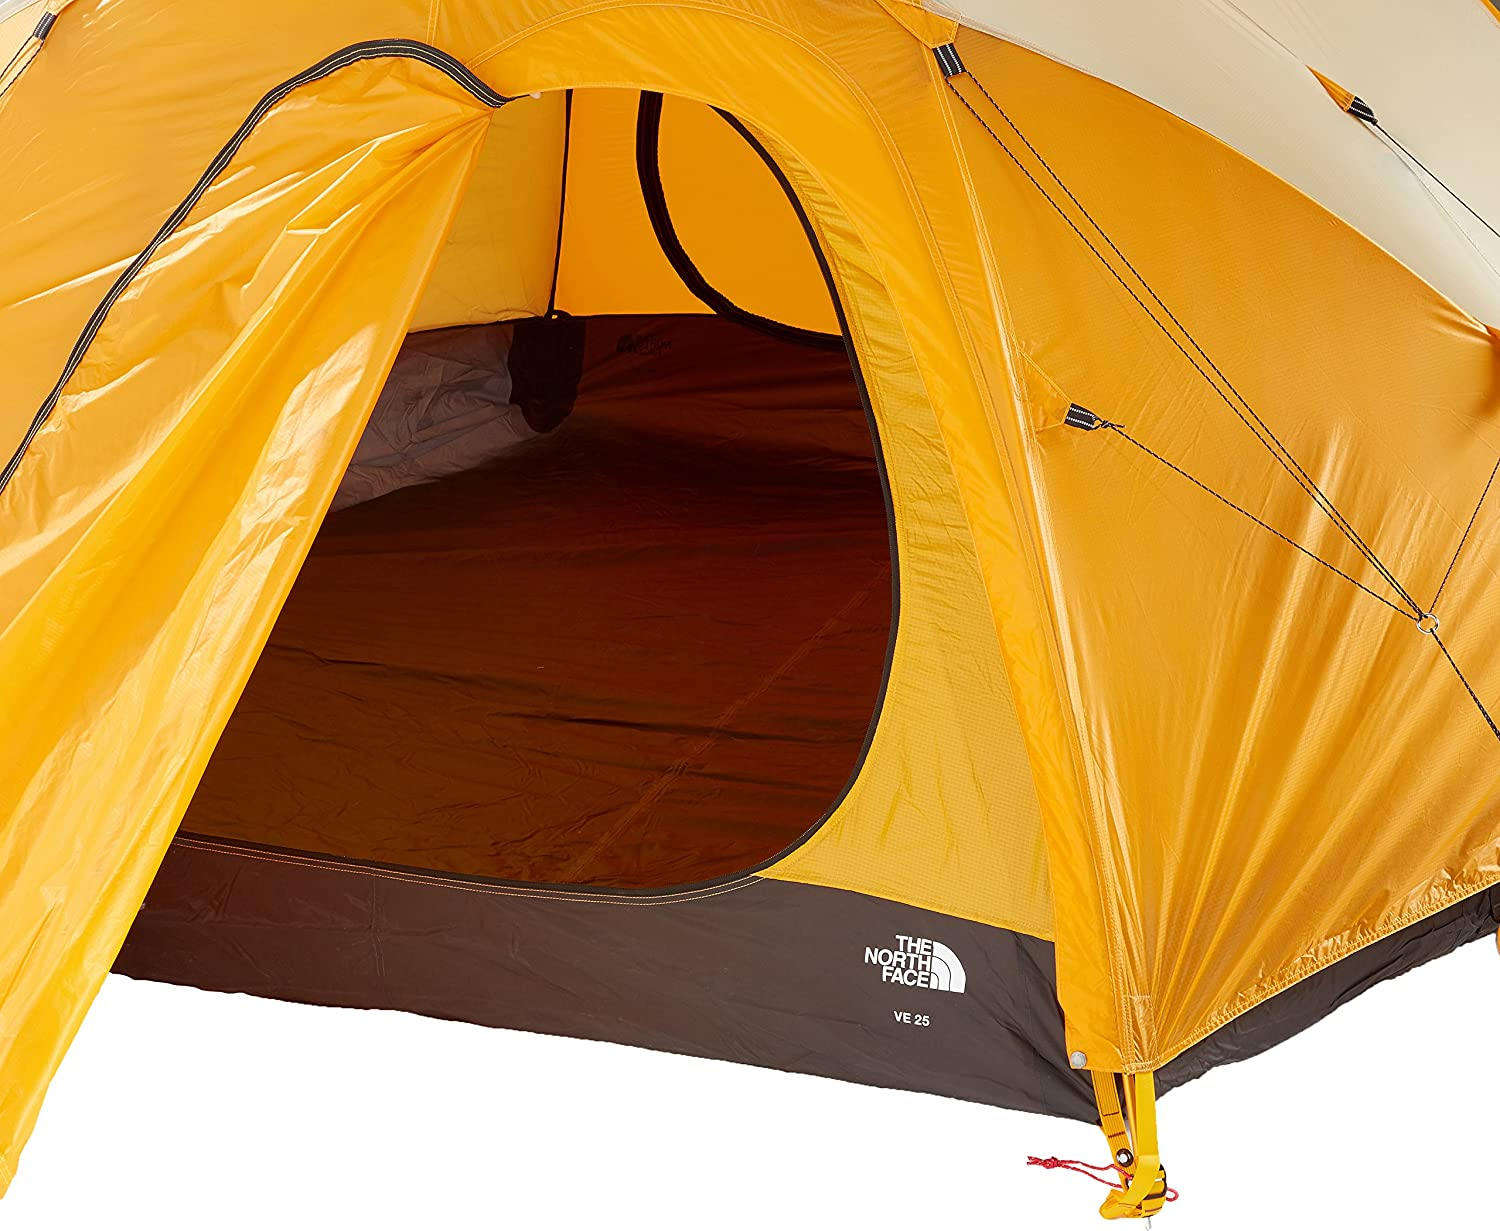 The North Face VE 25 Tent - Summit Gold One Size Amazon.co.uk Sports u0026 Outdoors & The North Face VE 25 Tent - Summit Gold One Size: Amazon.co.uk ...